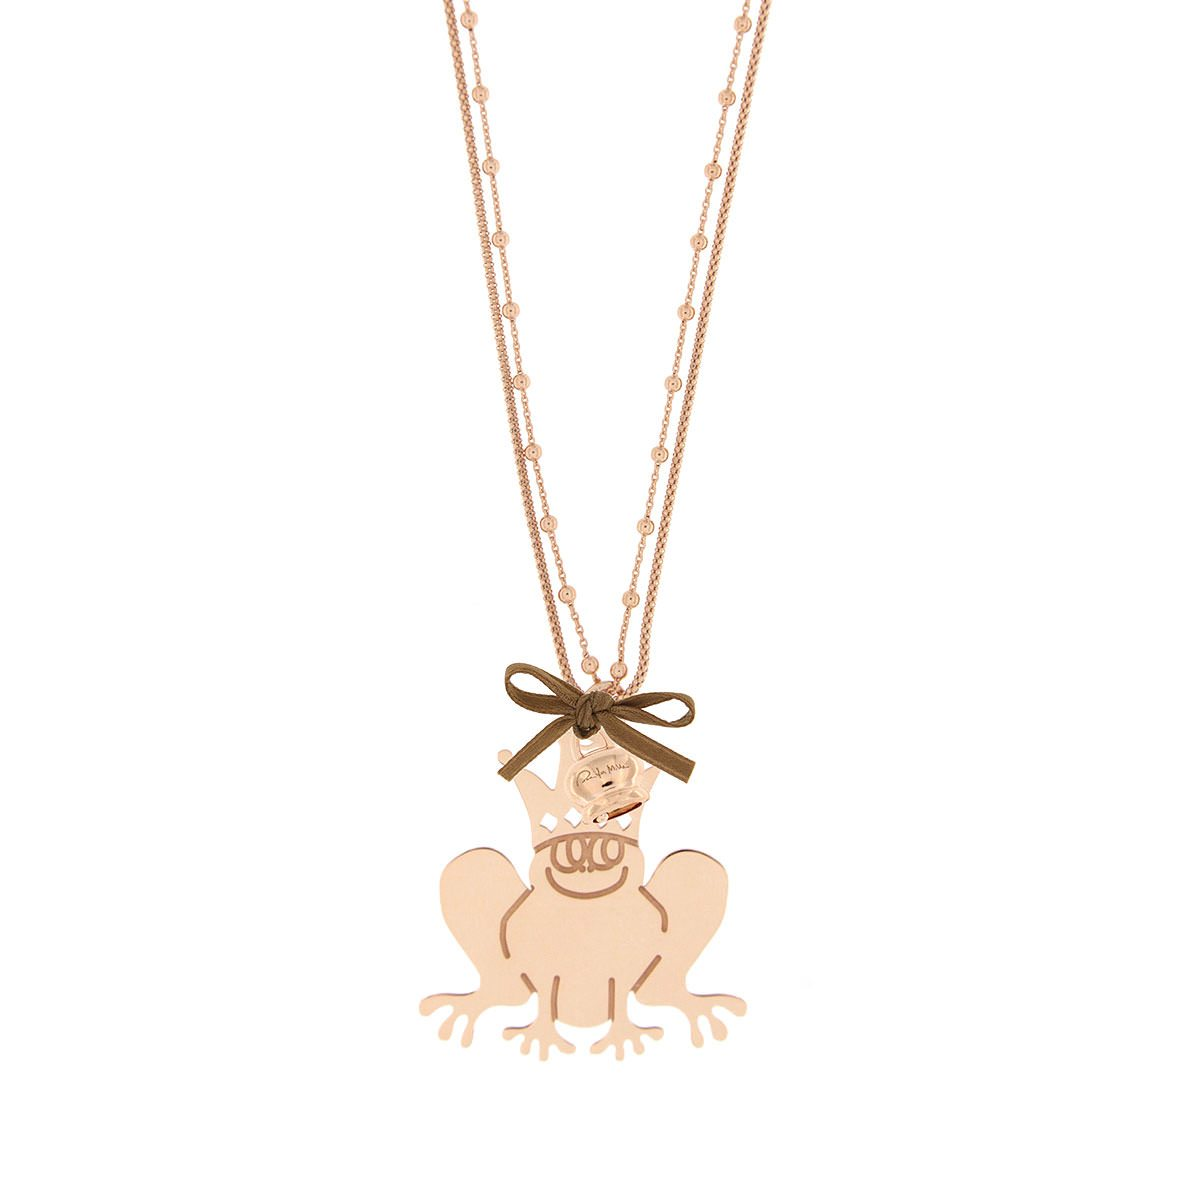 Necklaces - Double Chain Necklace with Frog and Little Bell - 1 | Rue des Mille